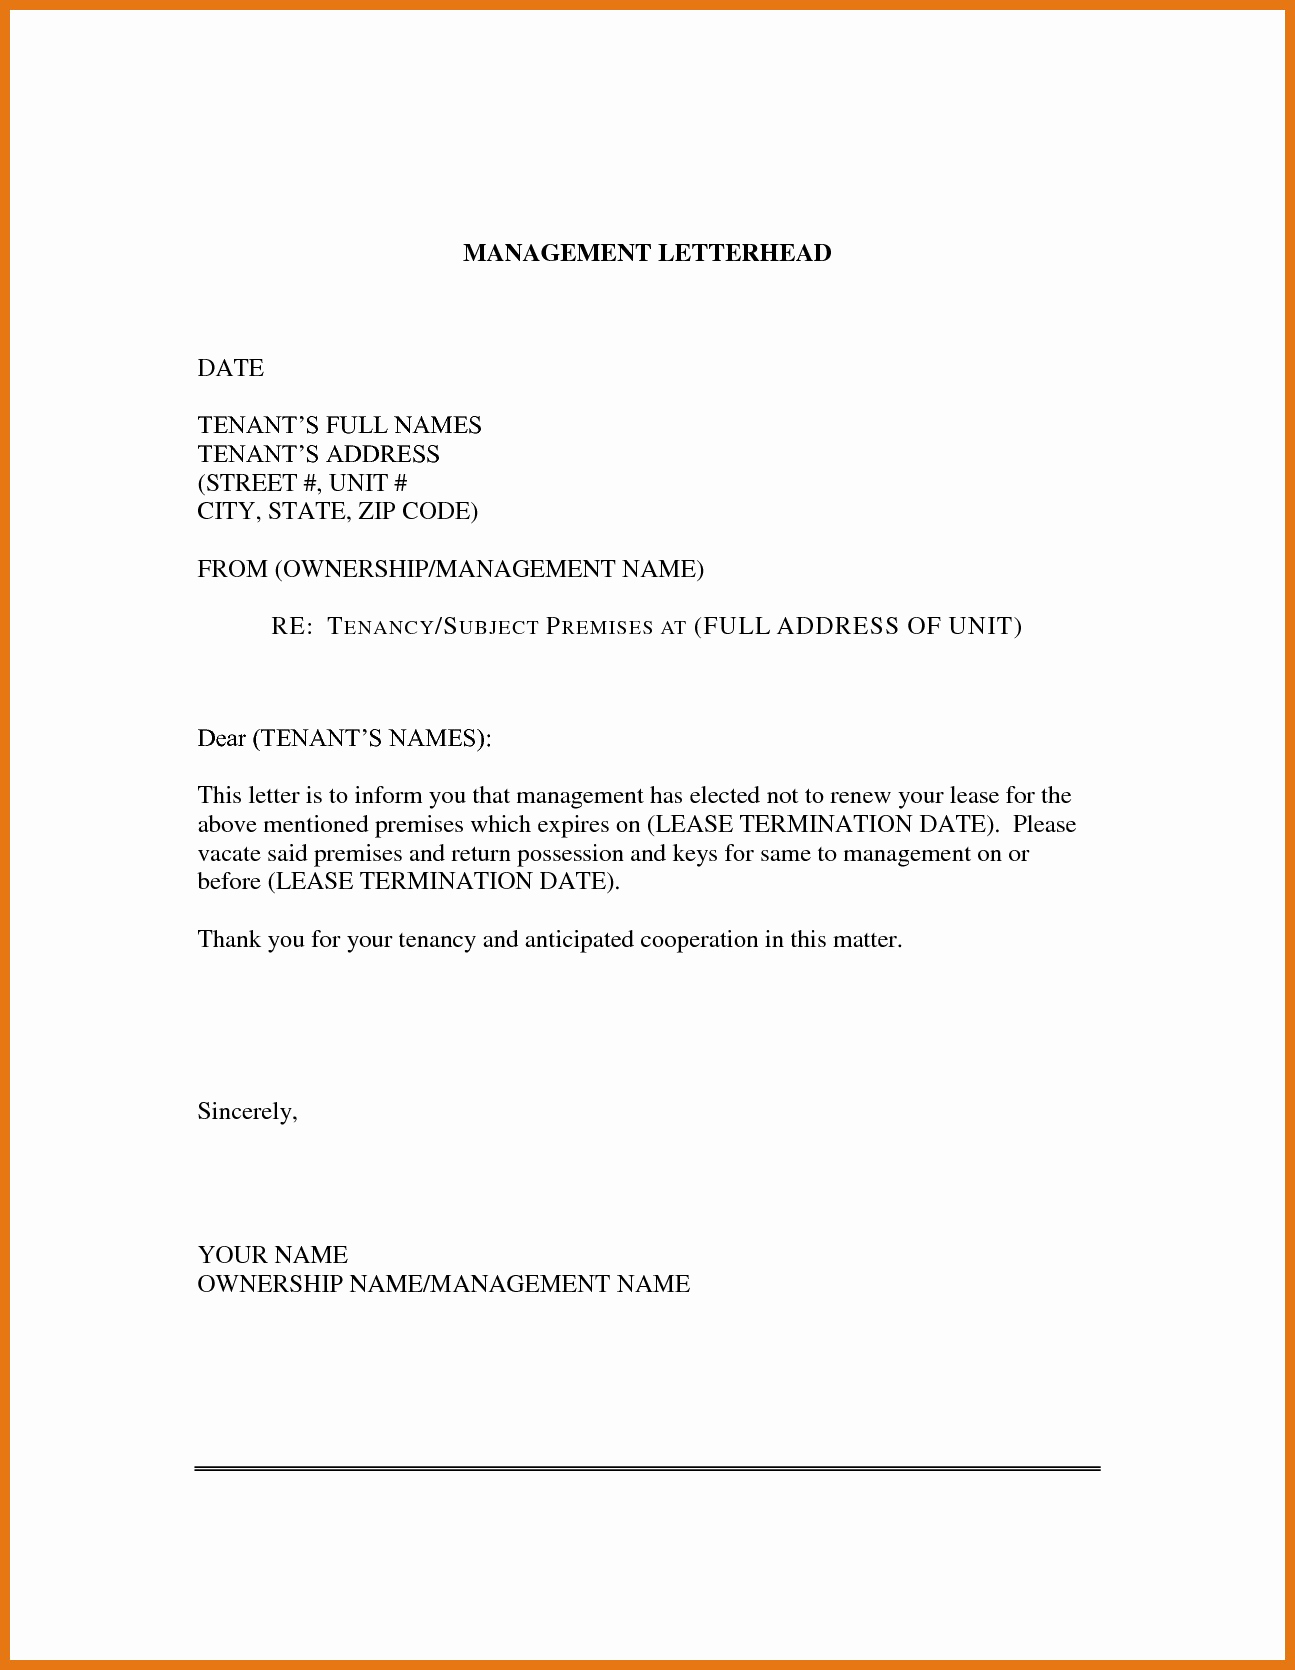 lease renewal letter sample lease renewal reminder letter template samples letter 17347 | contract renewal letter template fresh renewal letter sample best of lease renewal reminder letter template